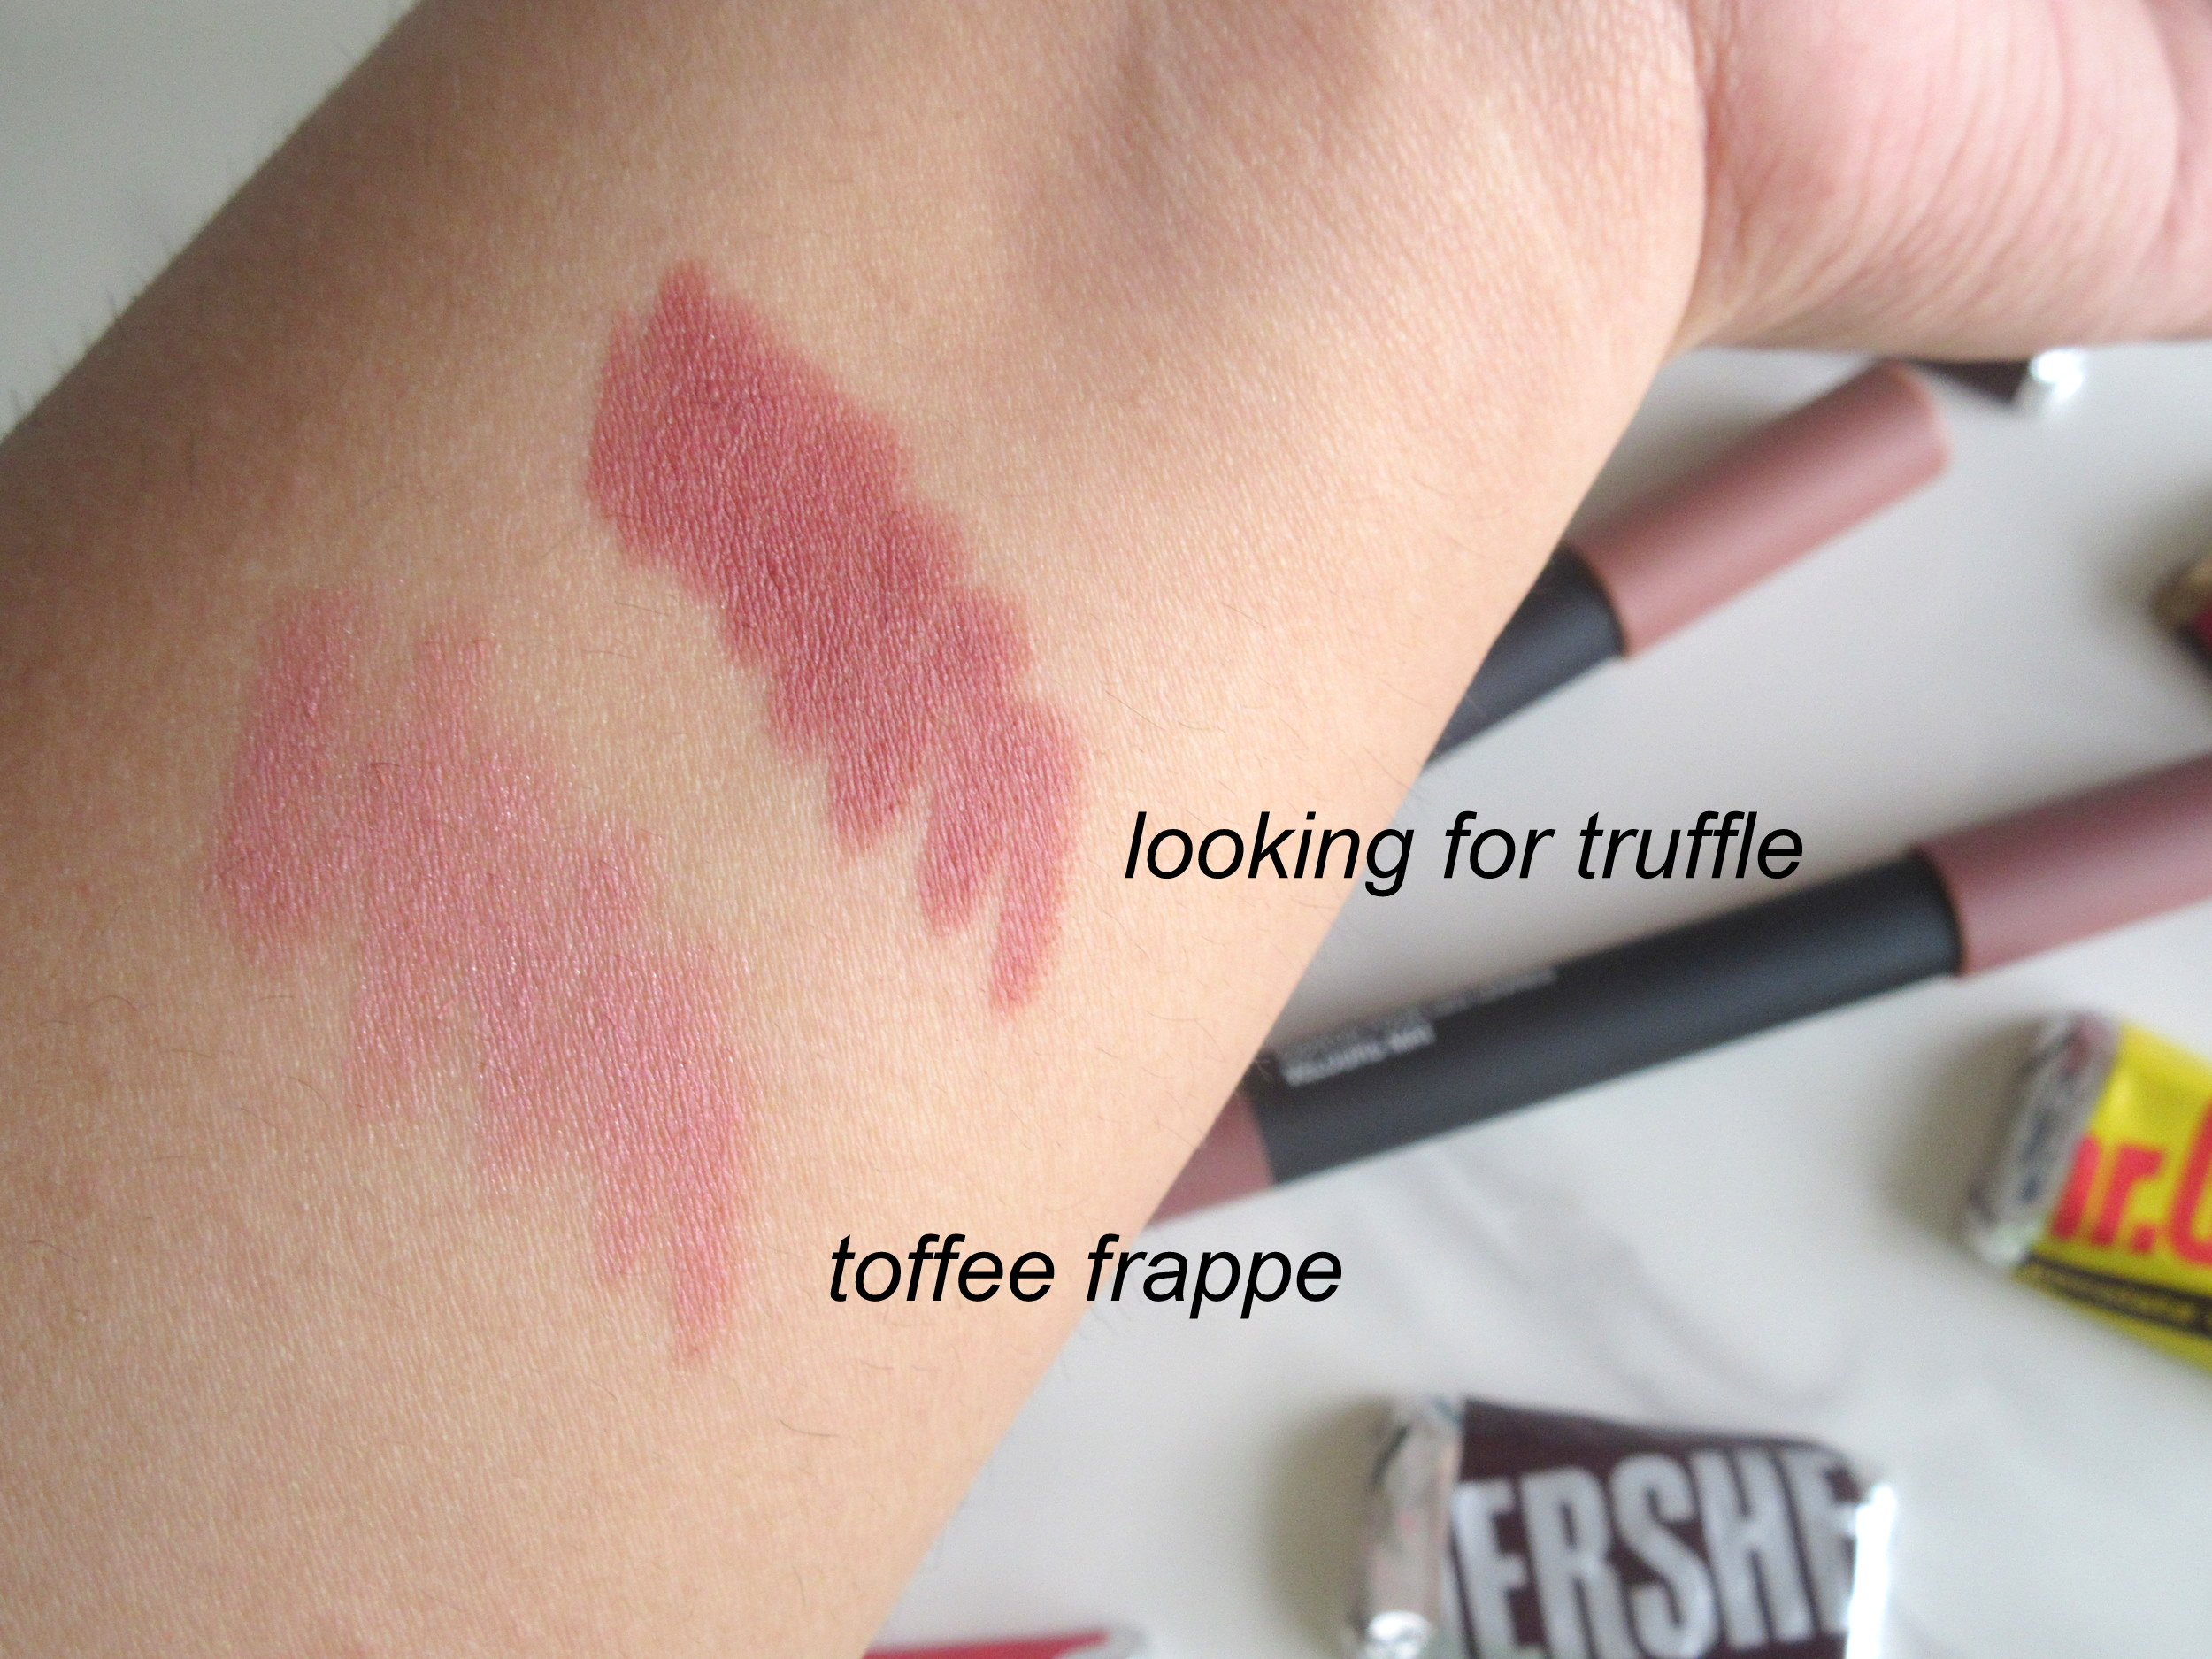 wet n wild velvet matte lip color, wet n wild lip crayon, wet n wild looking for truffle, wet n wild toffee frappe